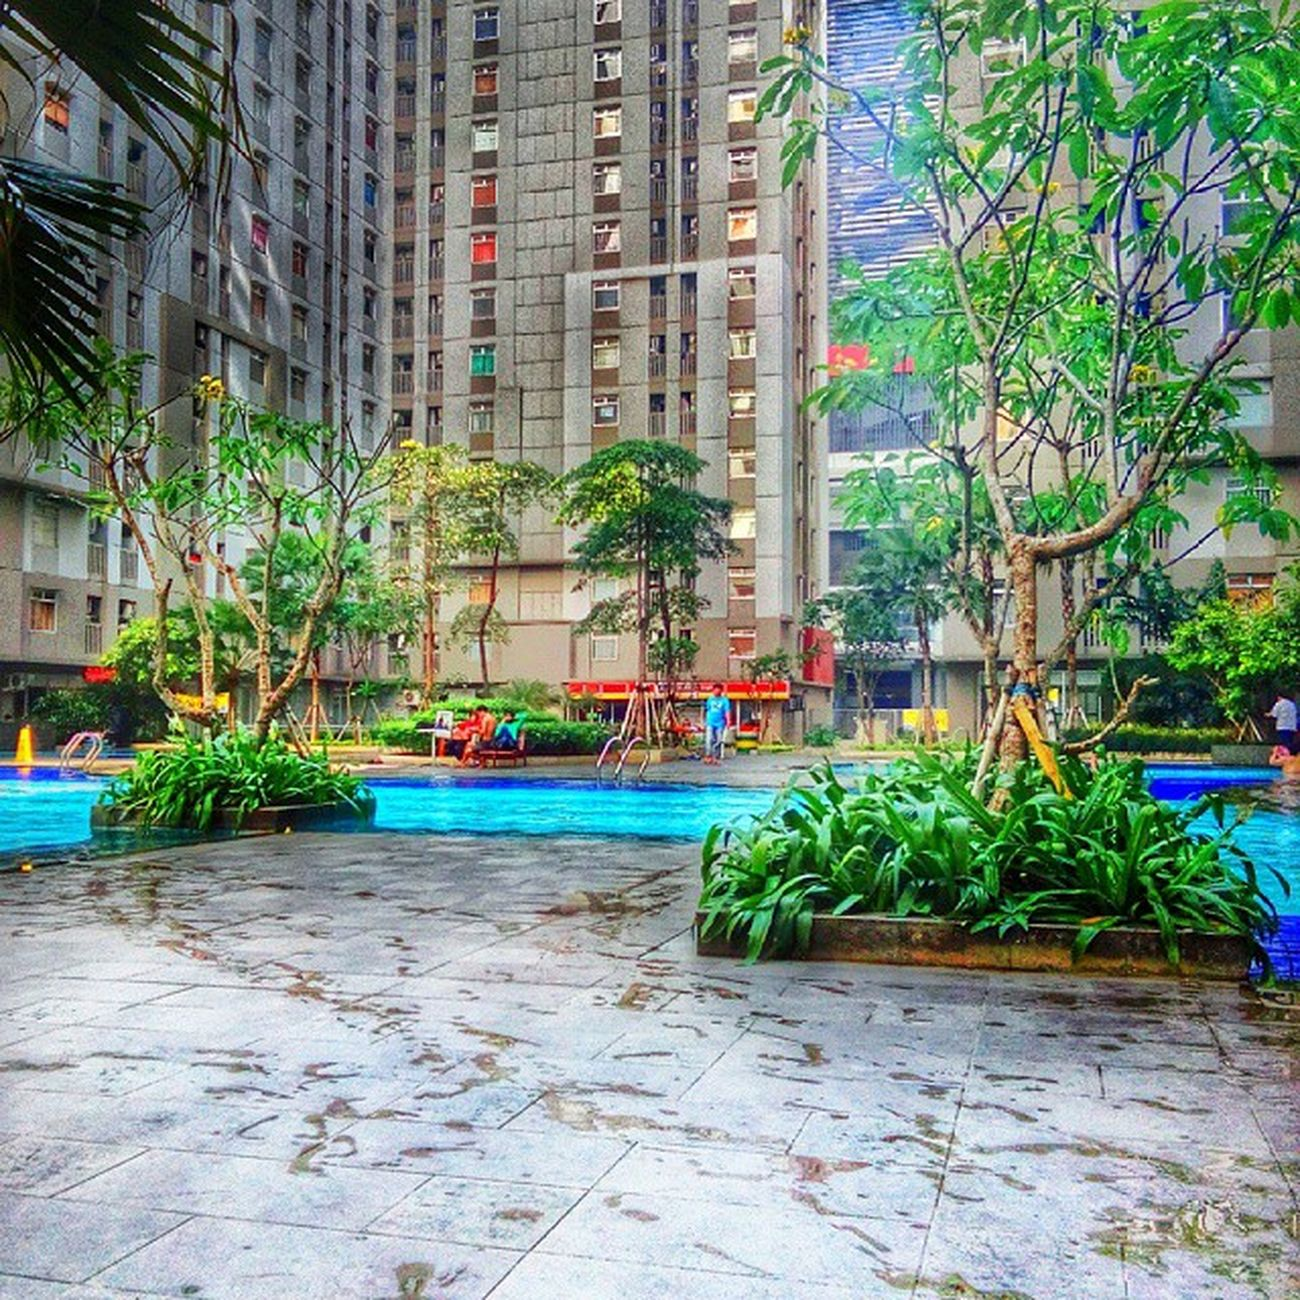 Berenang time... Architecture HDR Vivo Snapseed INDONESIA Greenbay Panorama Swimingpool Fresh